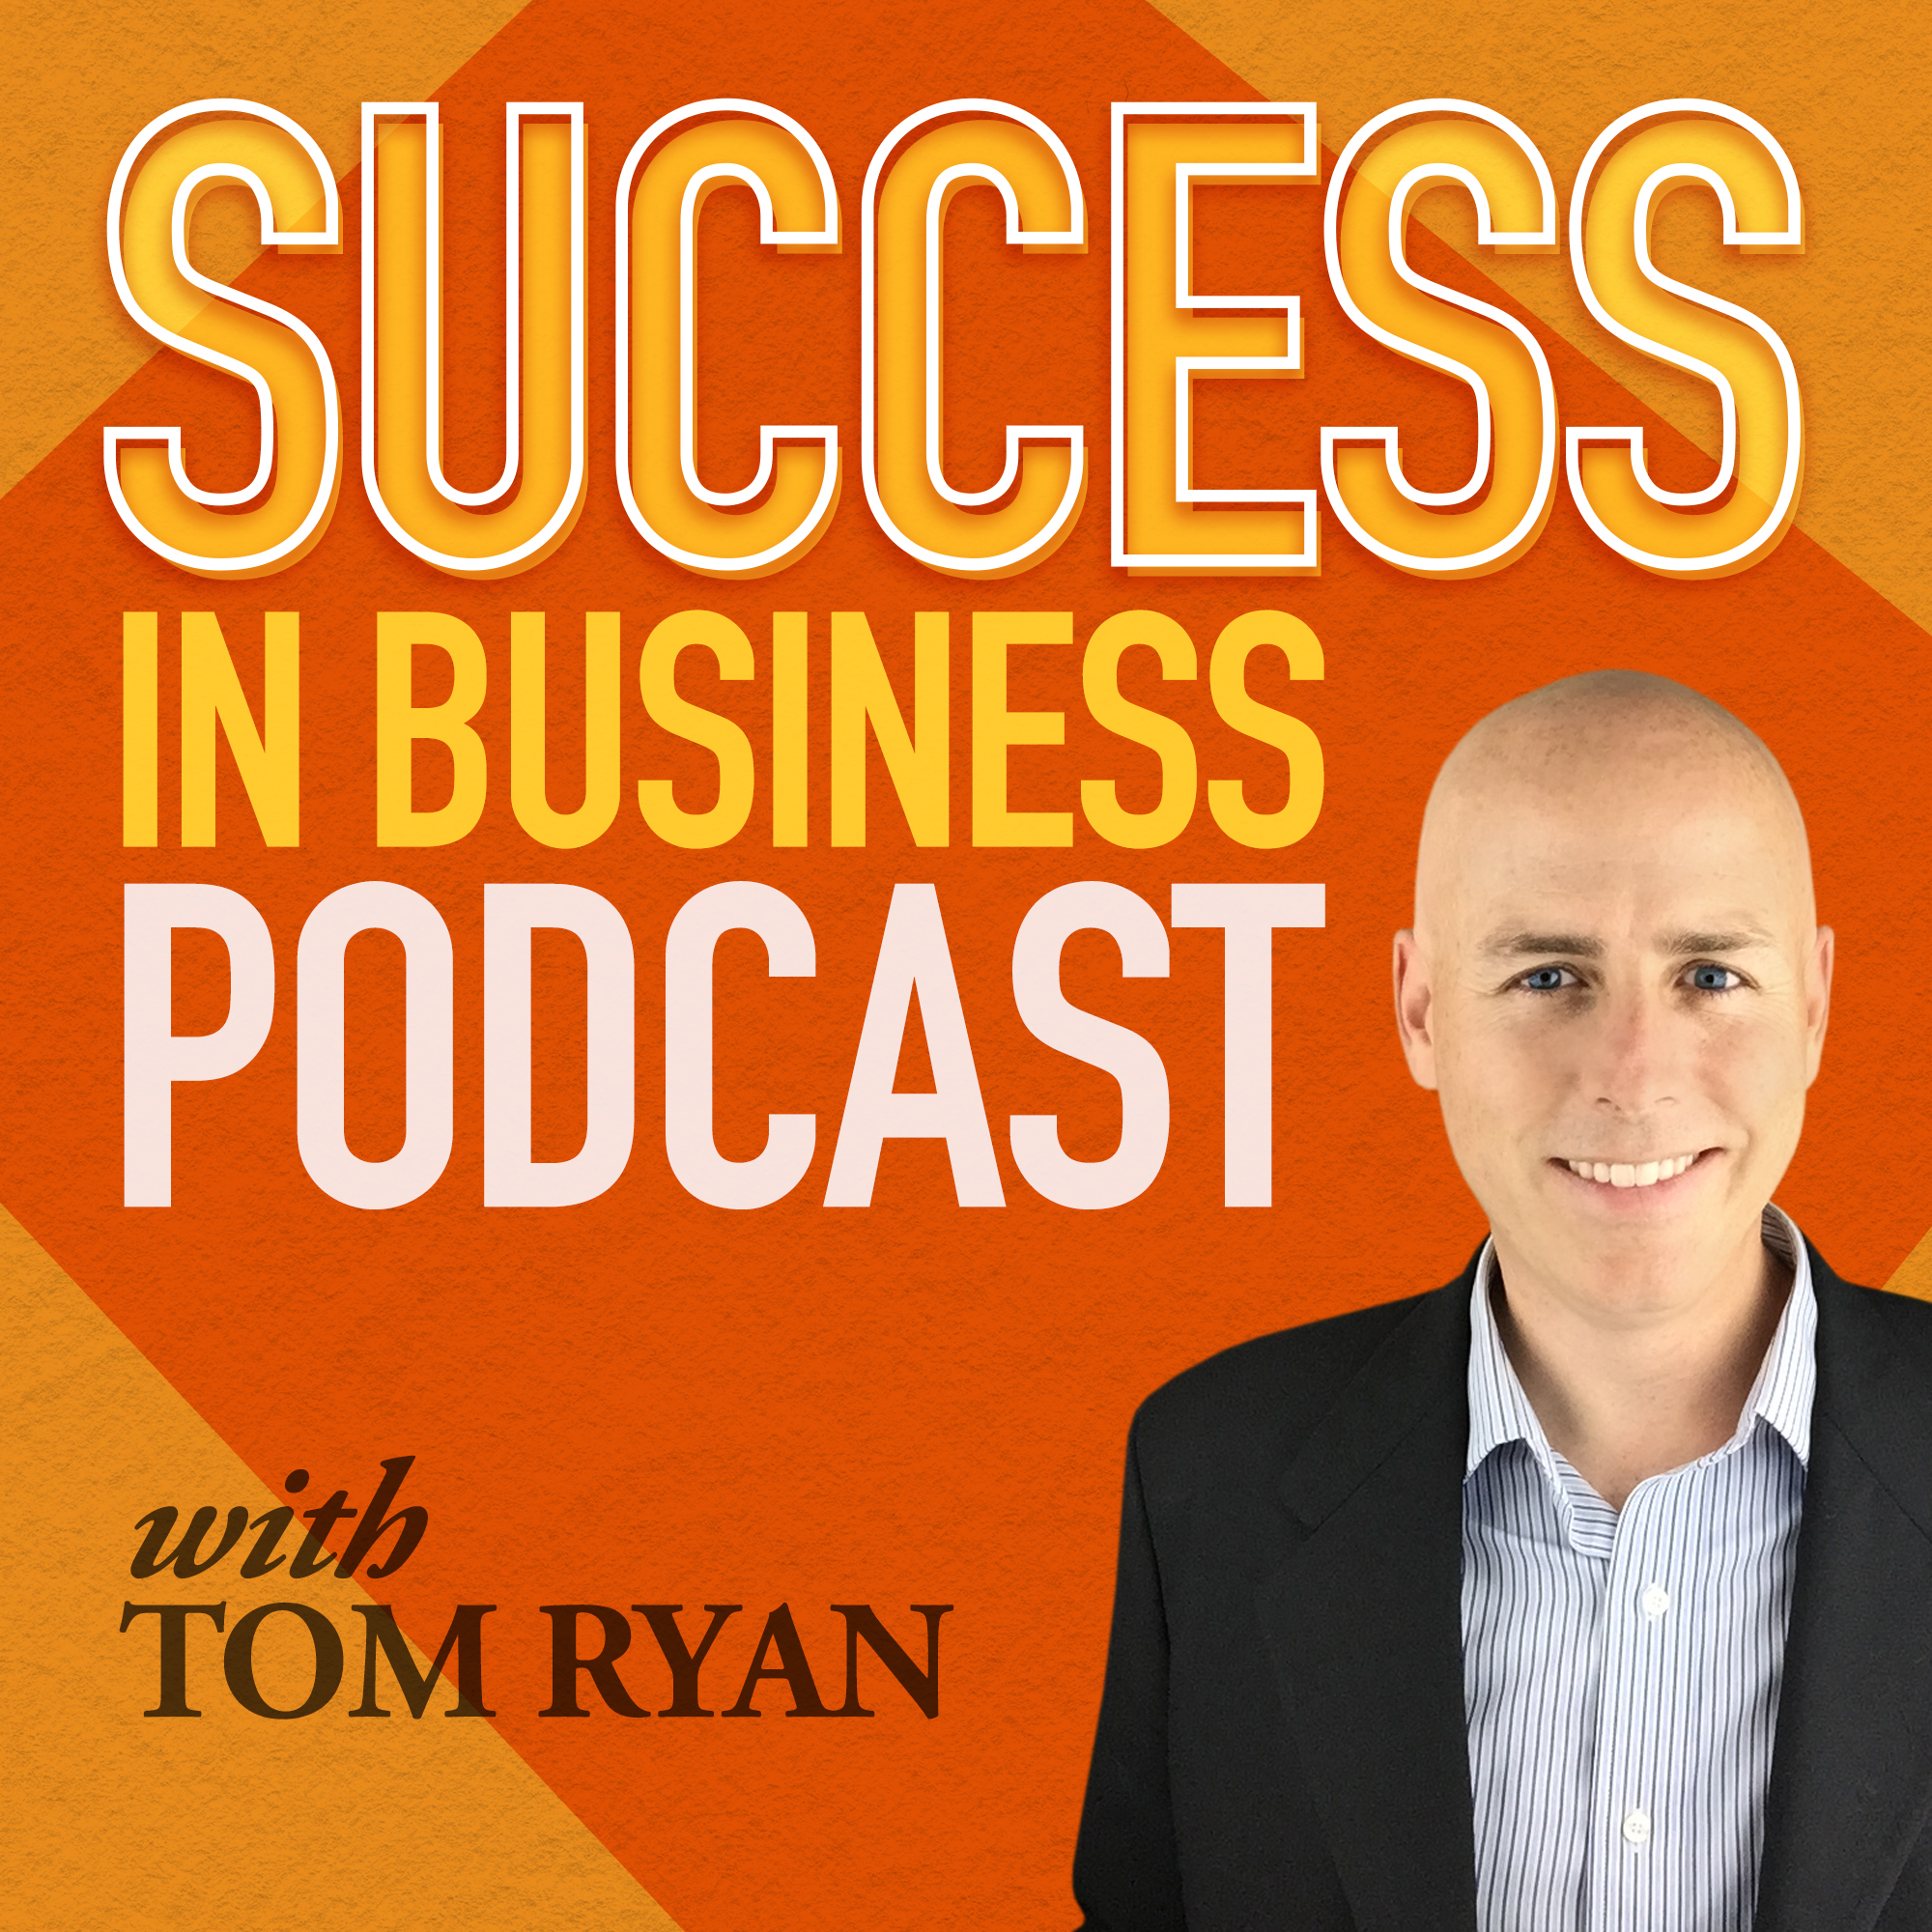 Success in Business Podcast - How-To Advice for Entrepreneurs and Small Business Owners